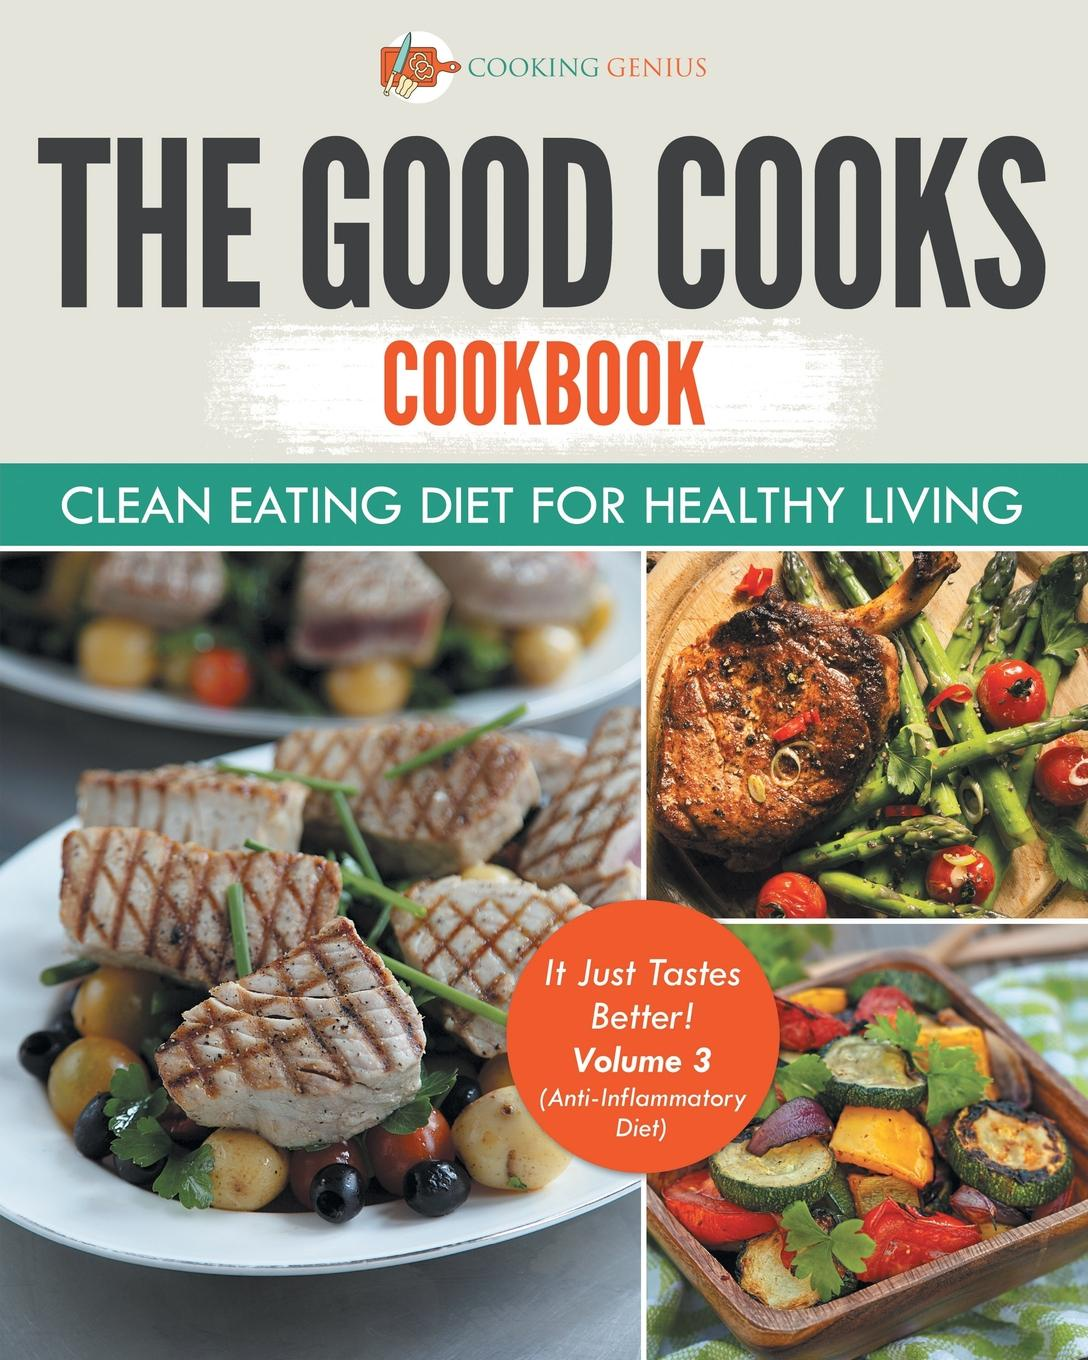 Фото - Cooking Genius The Good Cooks Cookbook. Clean Eating Diet For Healthy Living - It Just Tastes Better! Volume 3 (Anti-Inflammatory Diet) karen parker carter irene healthy cooking fat loss with clean eating